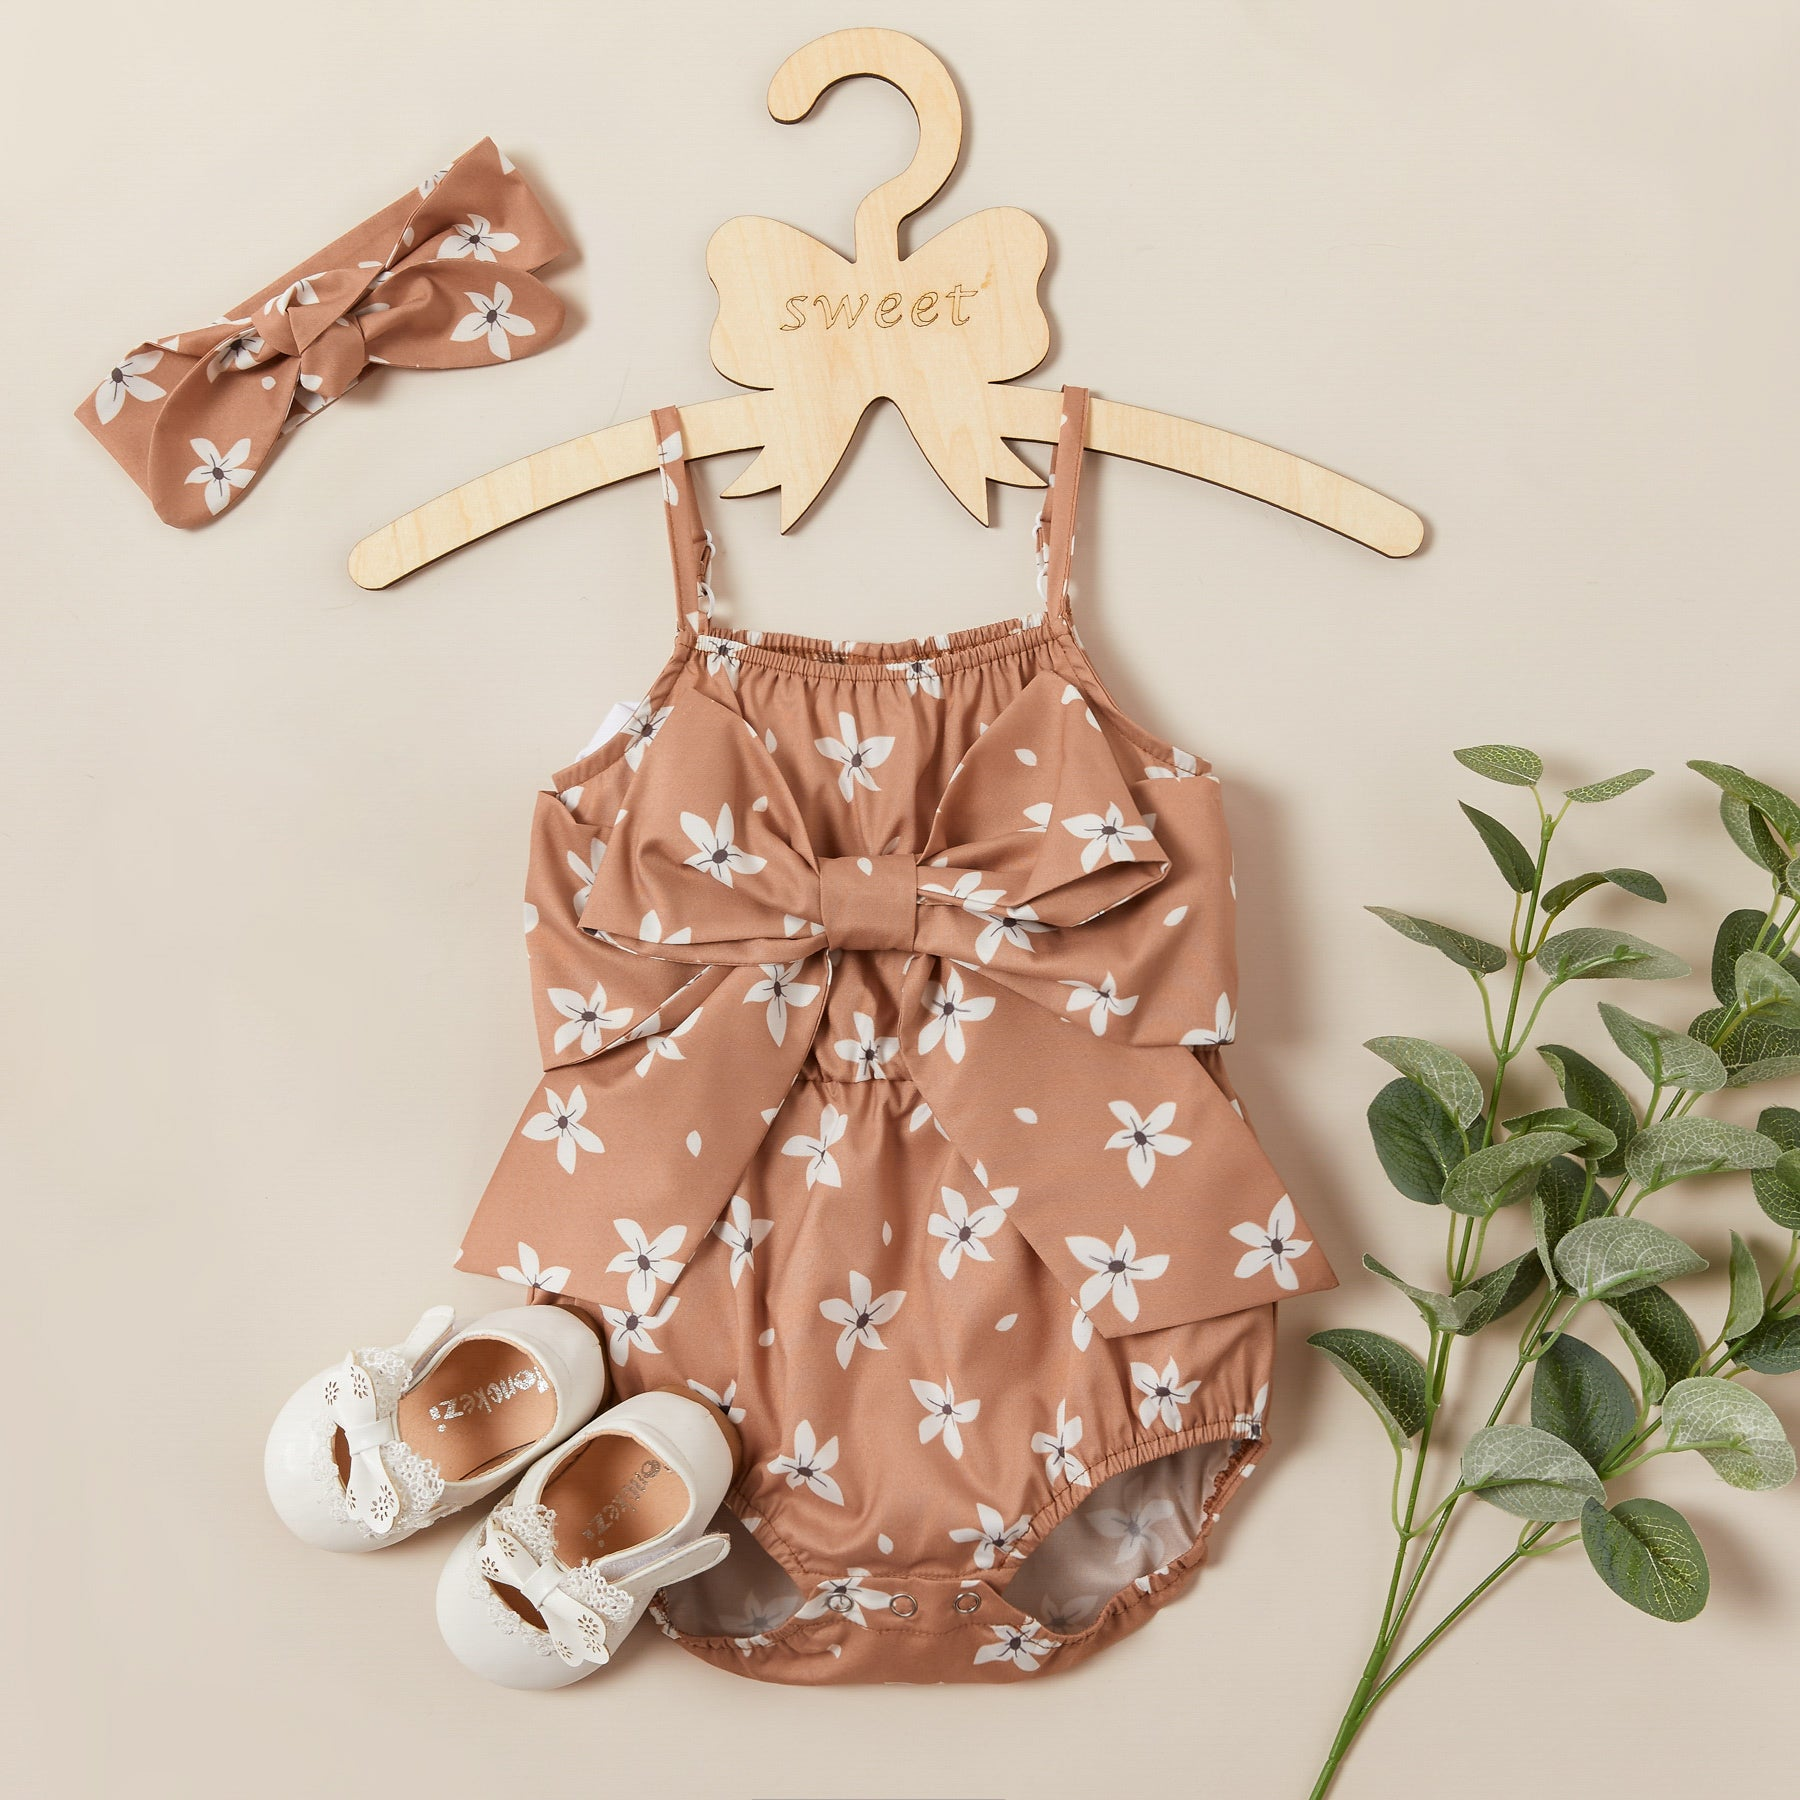 2-piece Baby / Toddler Bowknot Decor Flower Print Strappy Romper and Headband Set